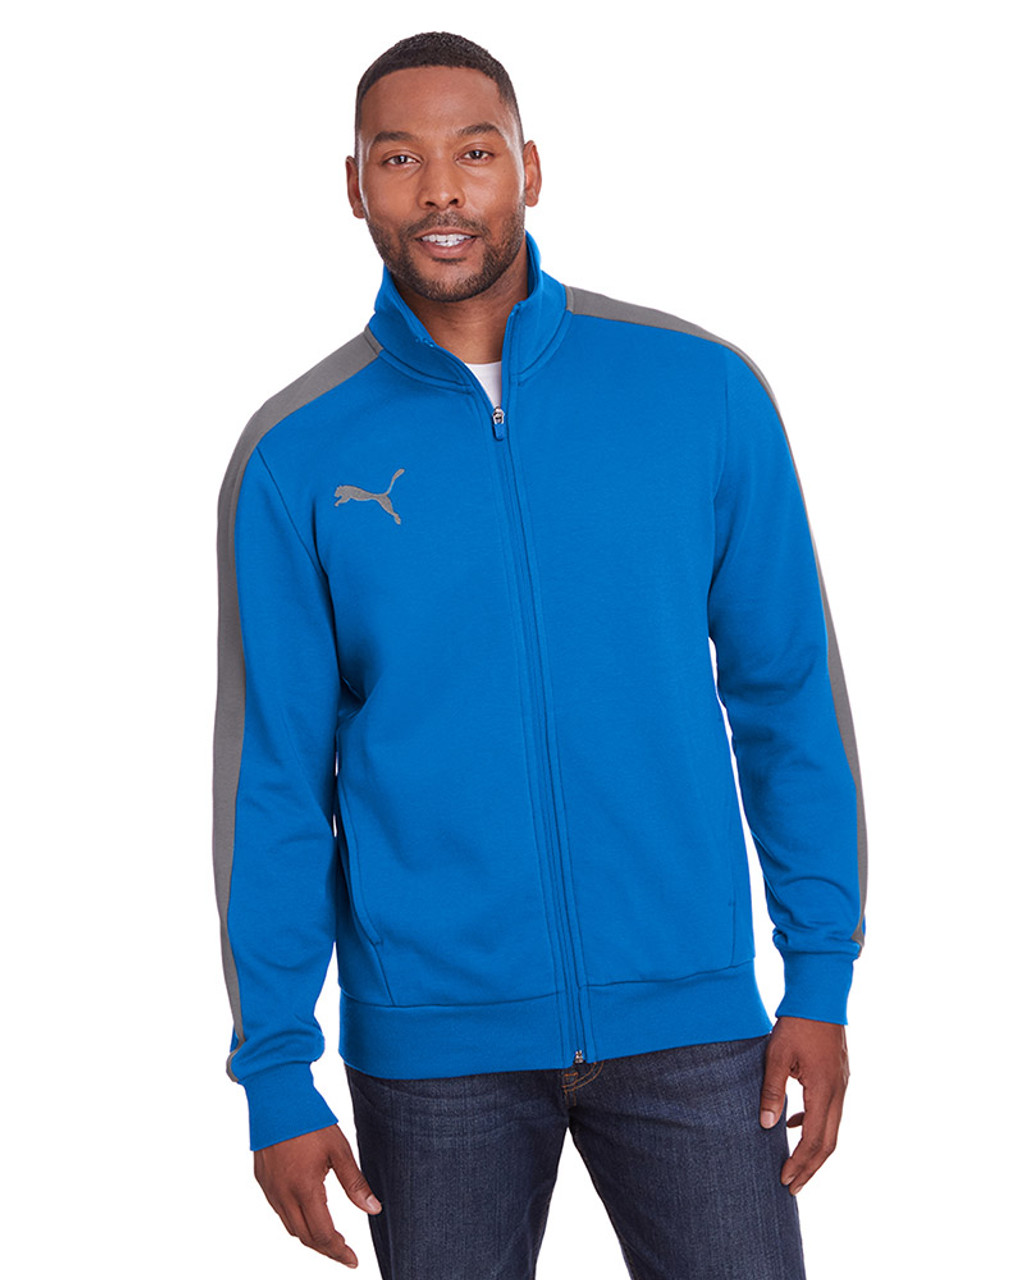 Lapis Blue/Quiet Shade - 597021 Puma Sport Adult P48 Fleece Track Jacket | Blankclothing.ca